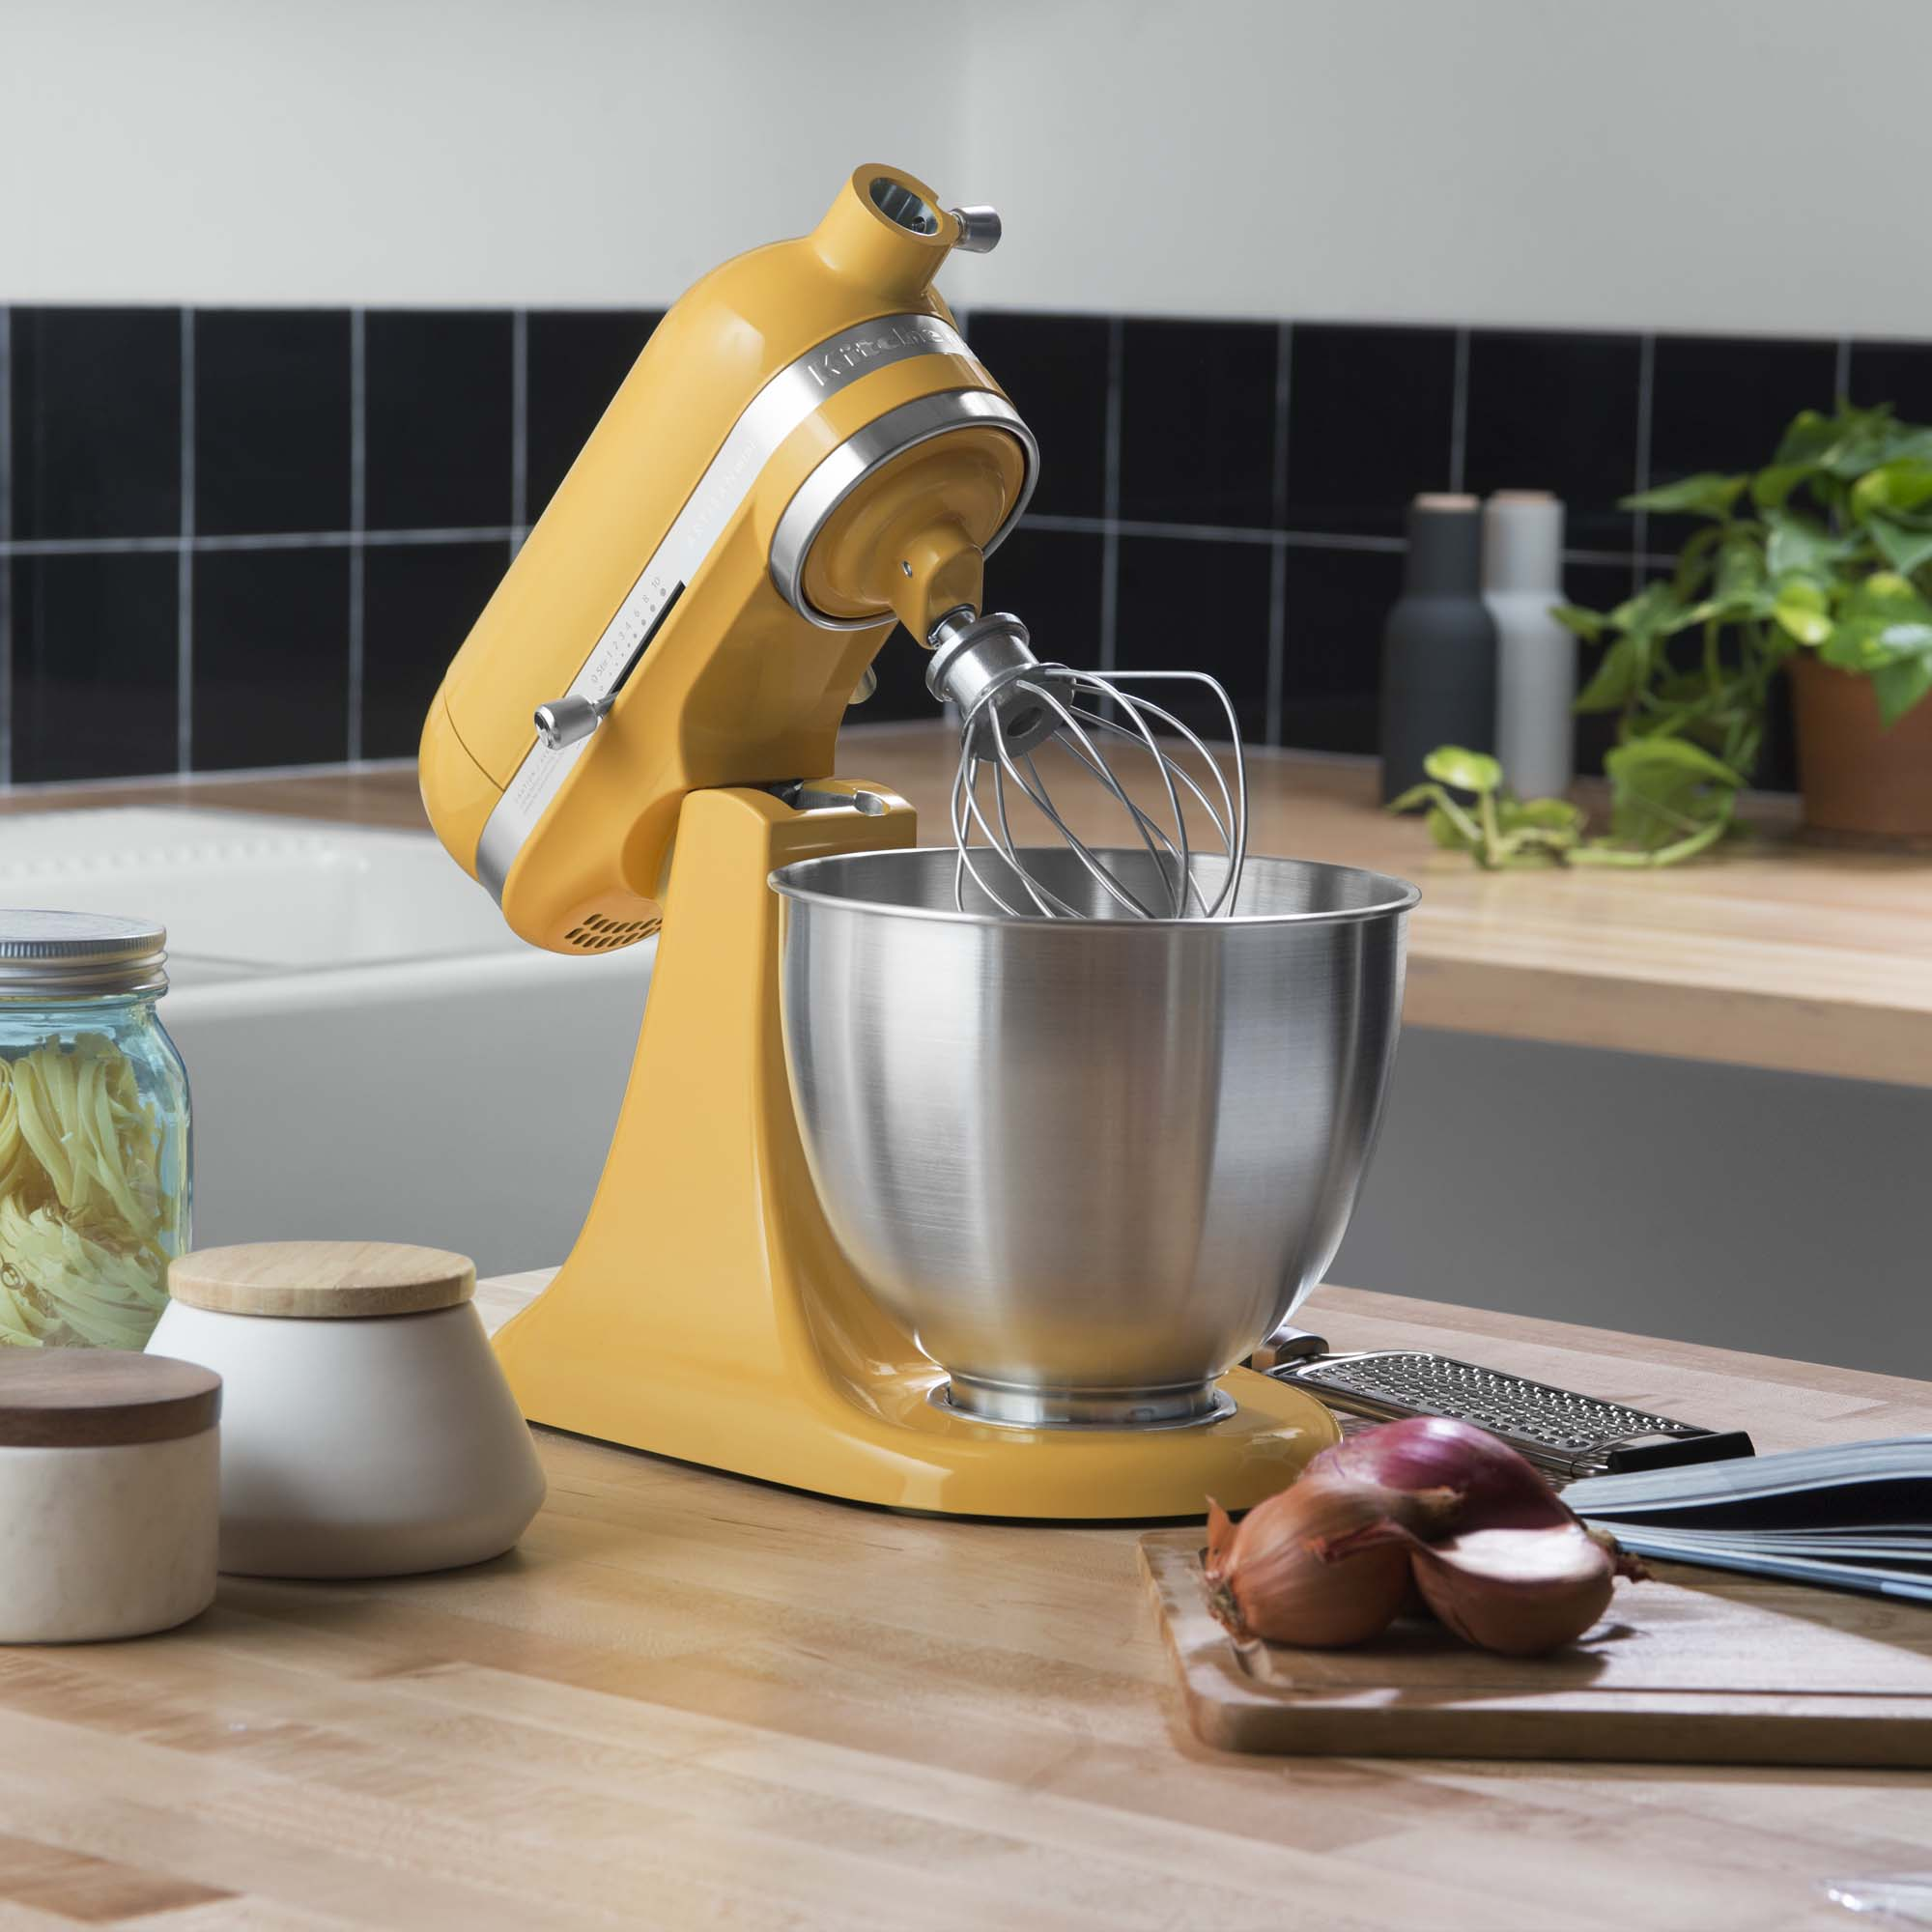 KitchenAid-Refurbished-Artisan-Mini-3-5-Quart-Tilt-Head-Stand-Mixer-RKSM33XX thumbnail 9